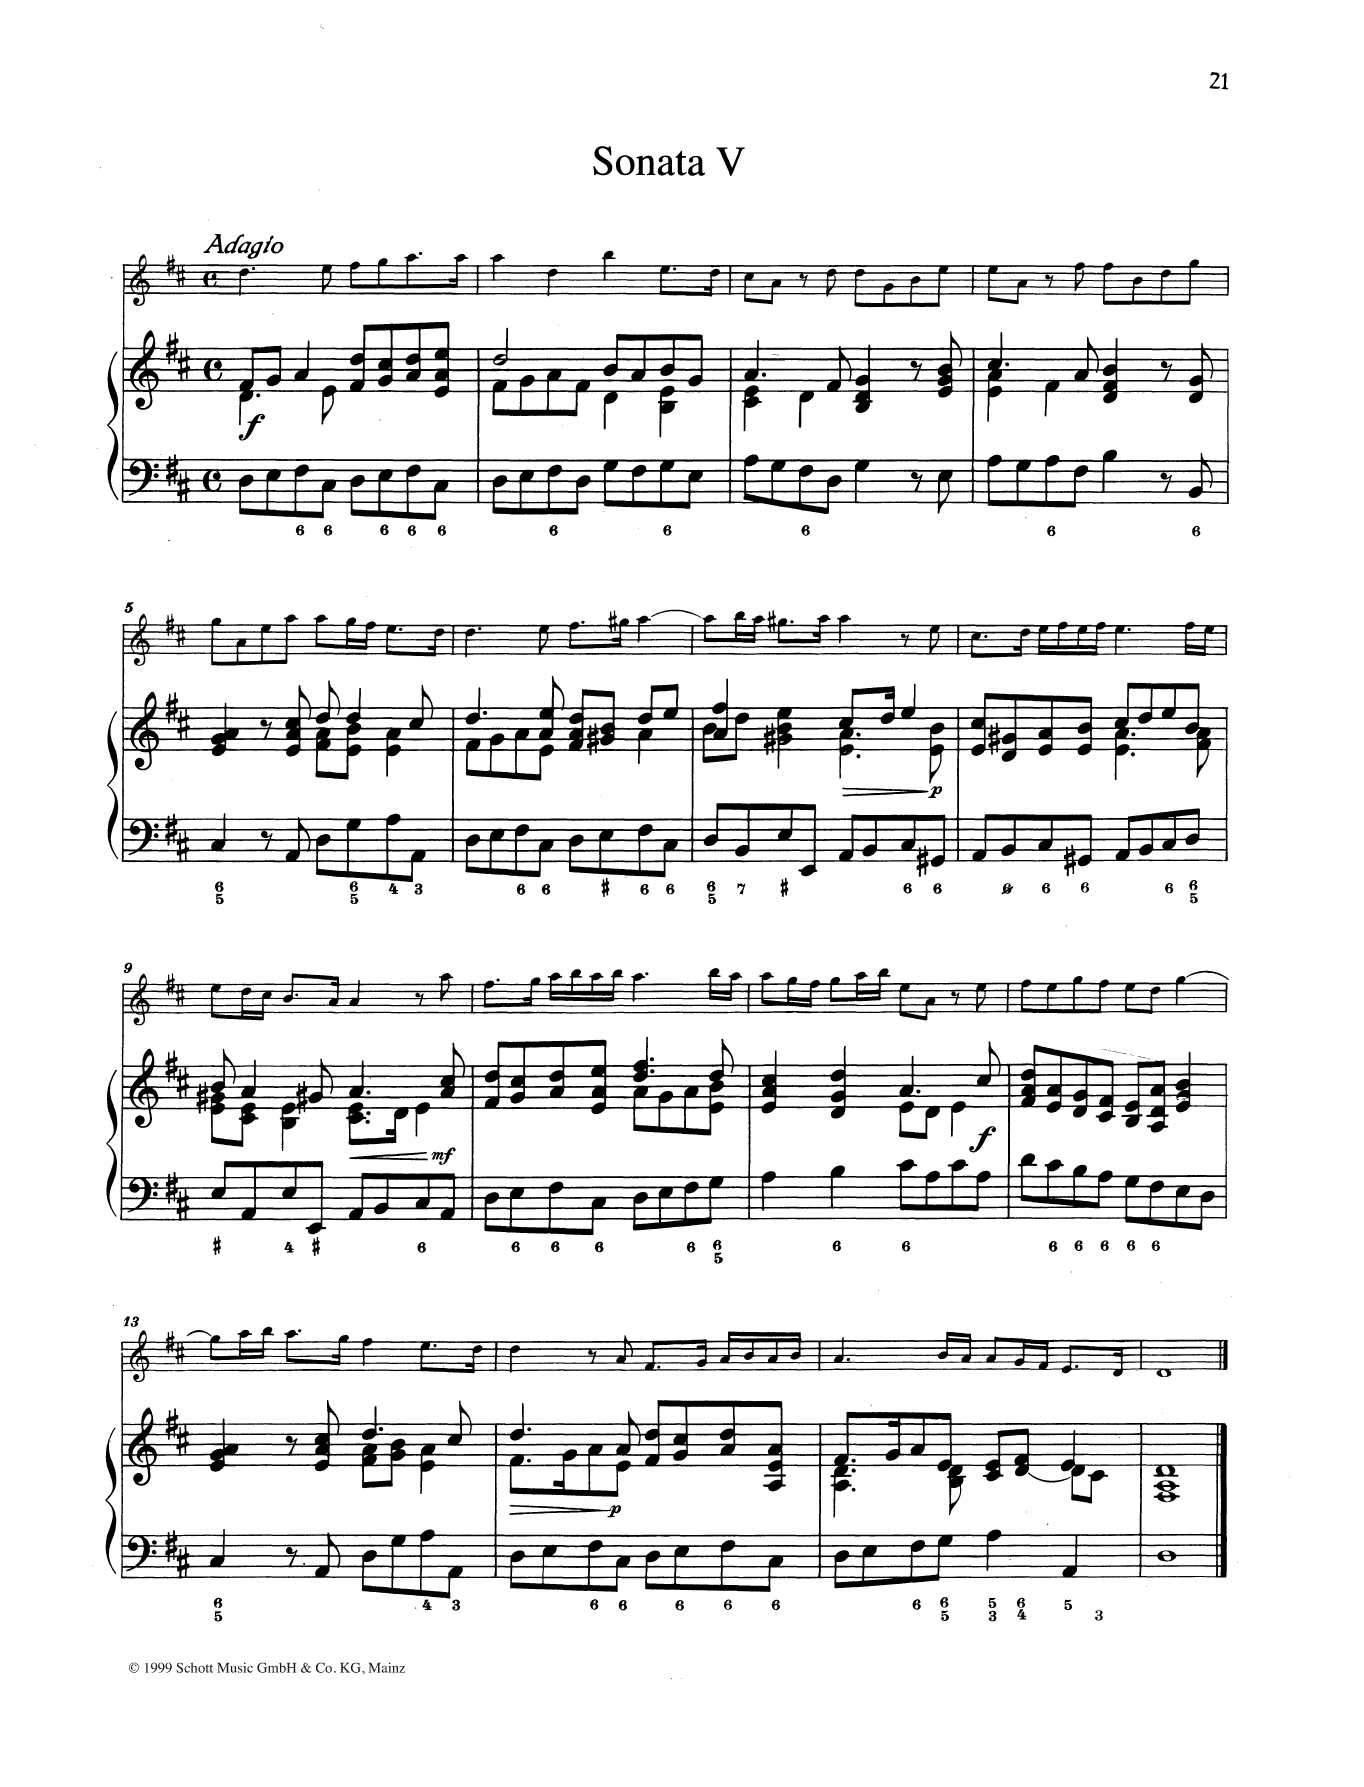 Sonata No. 5 Sheet Music